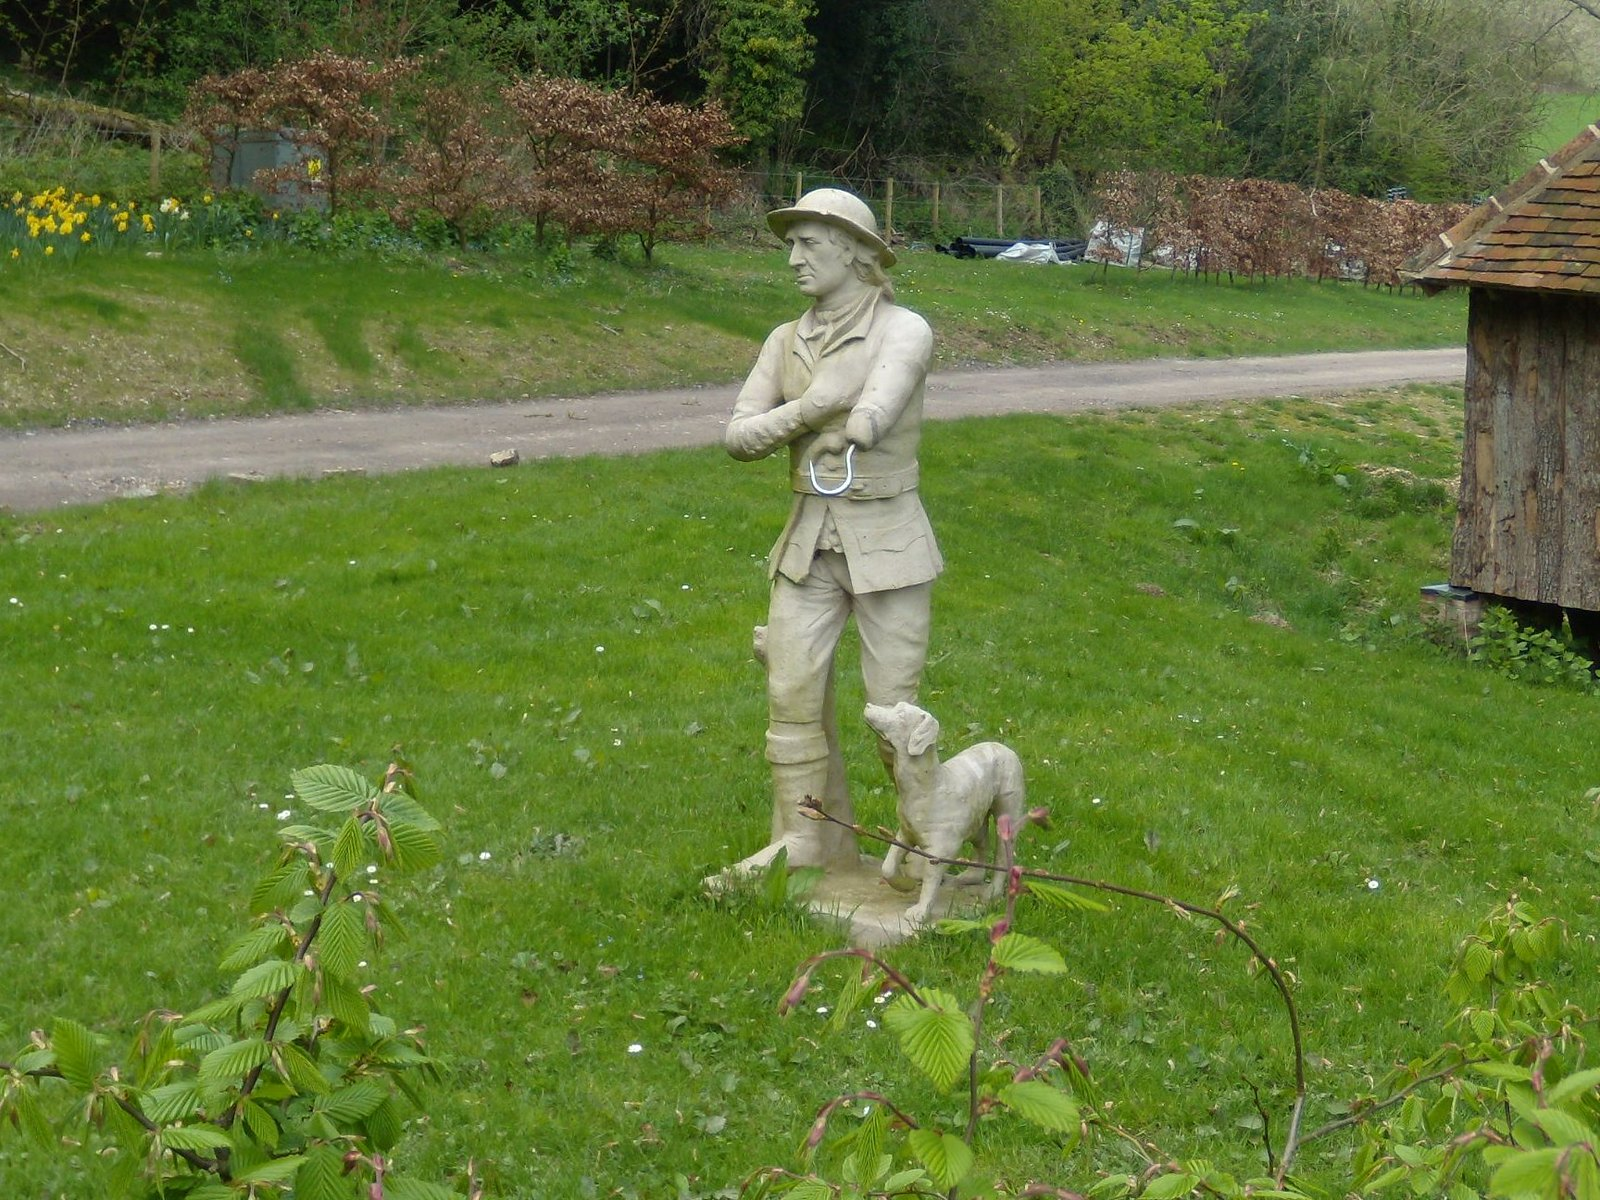 Statue, Colekitchen Farm Gomshall to Dorking